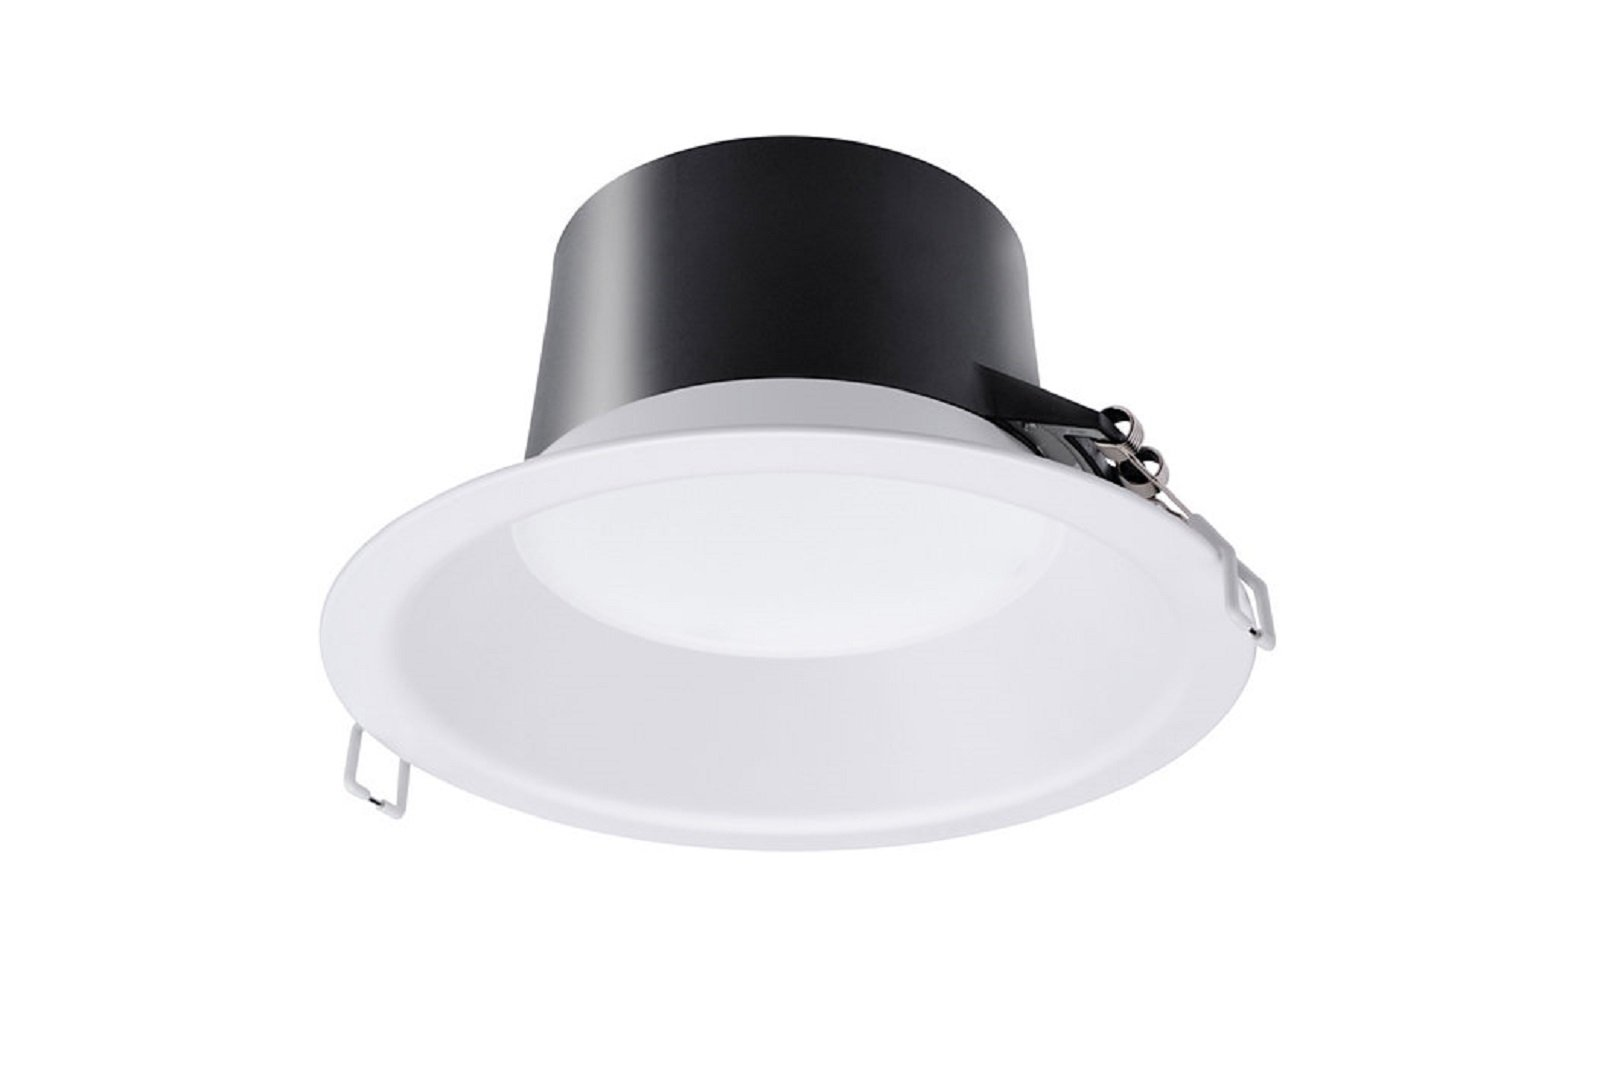 Plafoniera Quadrata Philips : Lampada led a incasso dn b s psu wh philips